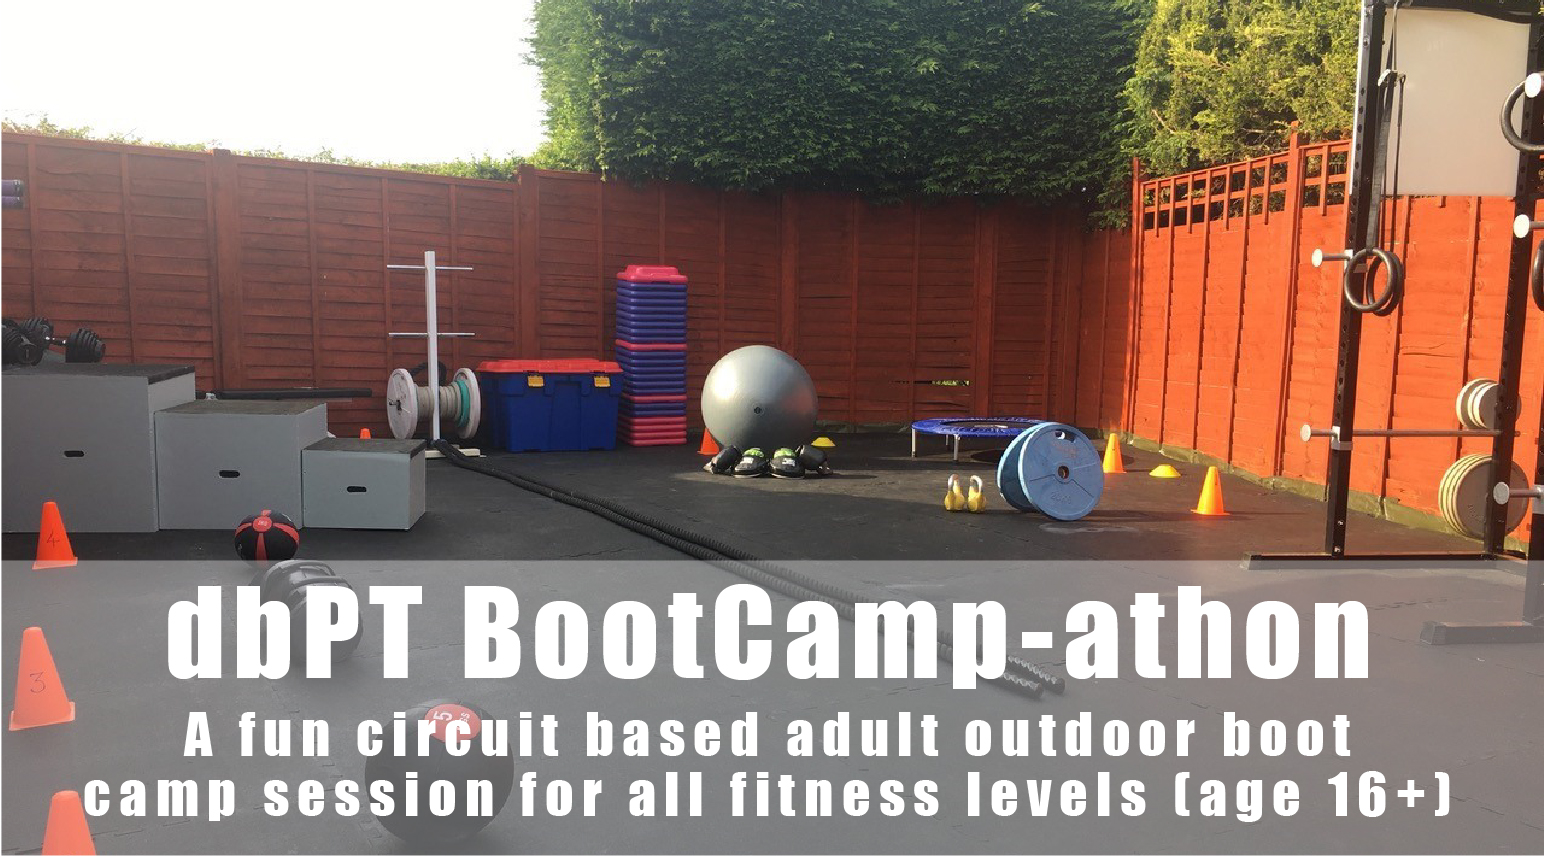 dbPT BootCamp-Athon. A fun circuit based adult outdoor boot camp session for all fitness levels (age 16+).